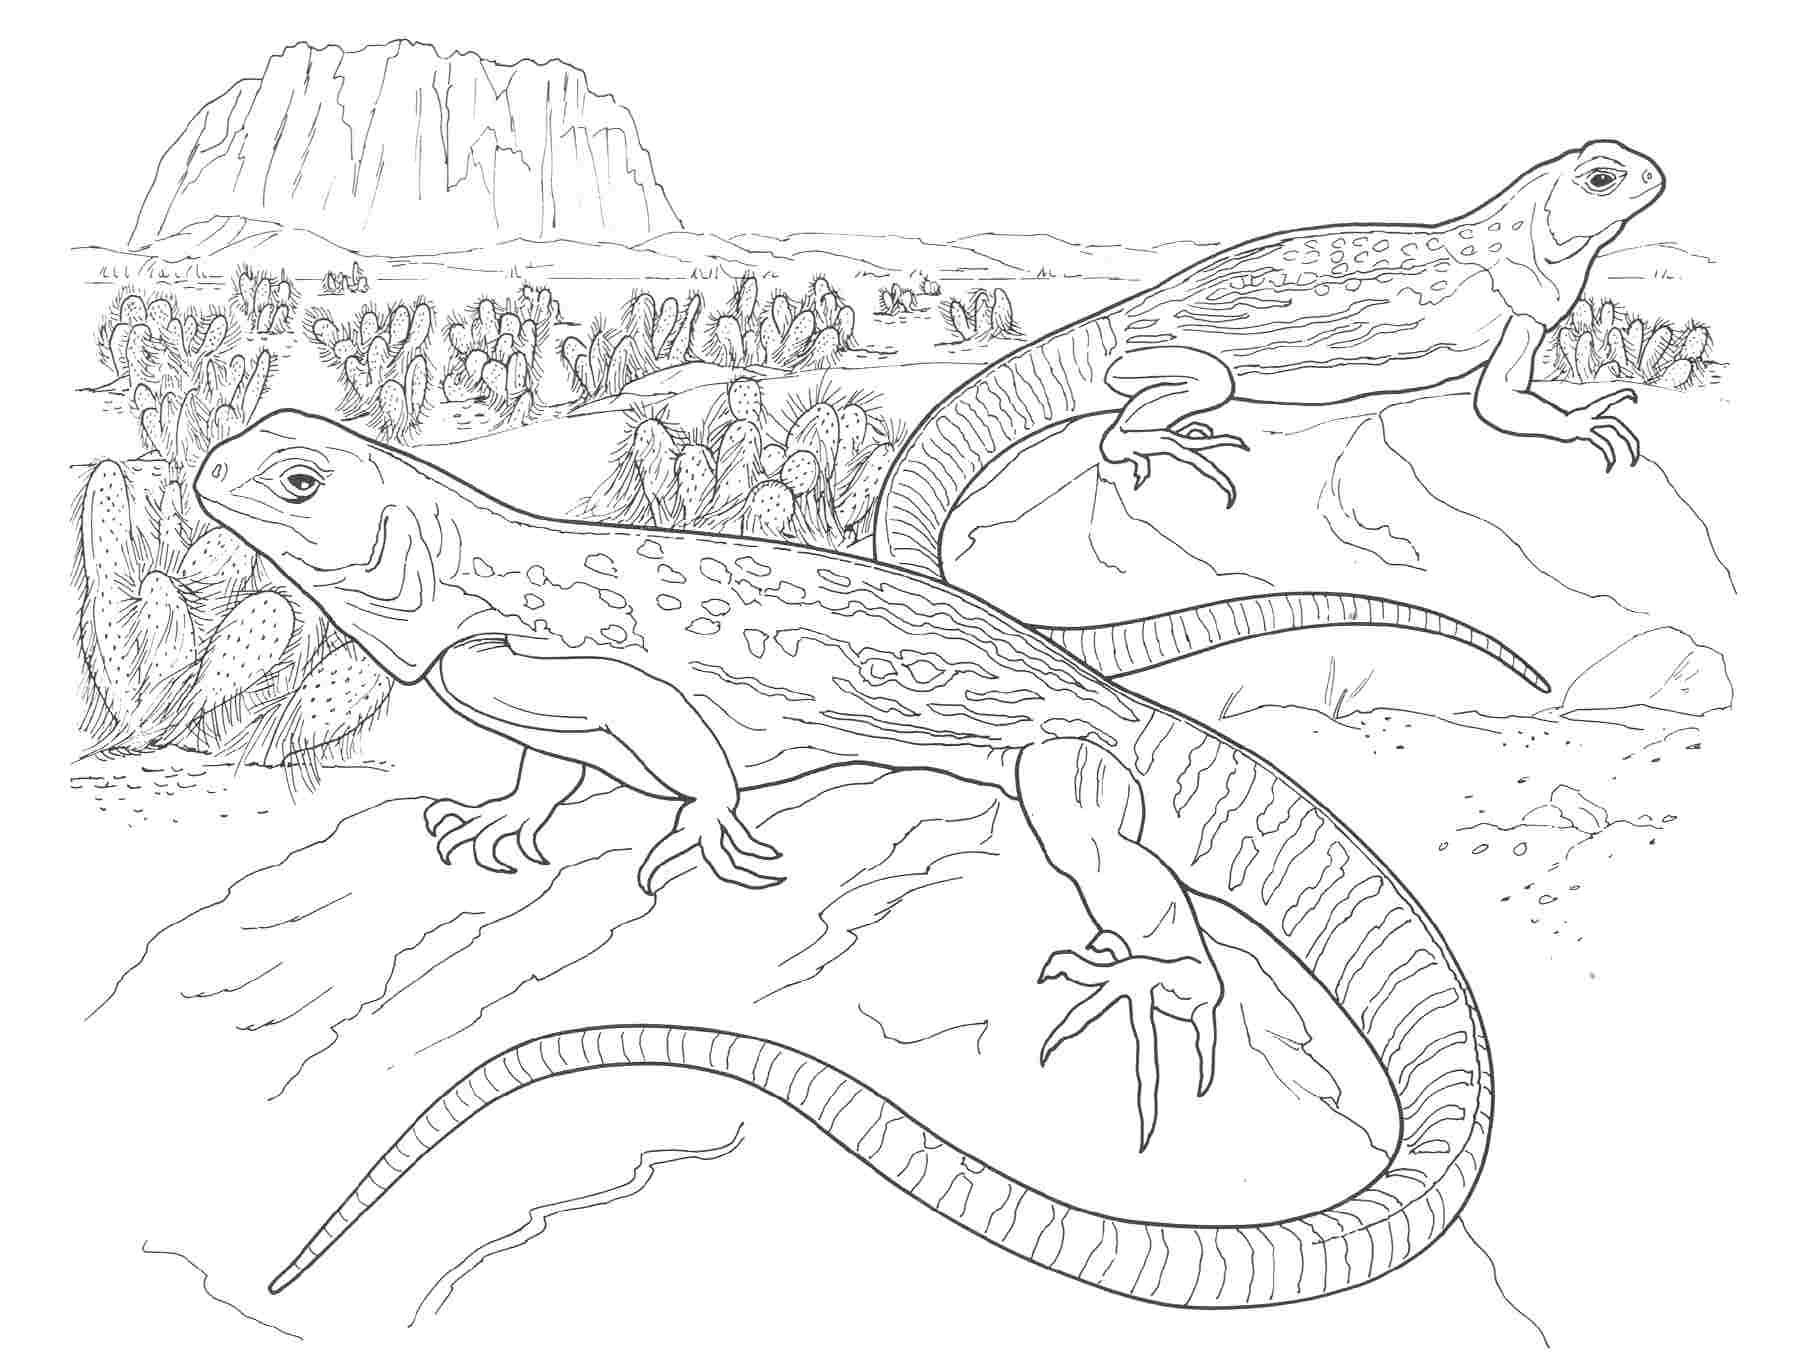 Iguana_Free_Printable_Adult_Coloring_Pages_01